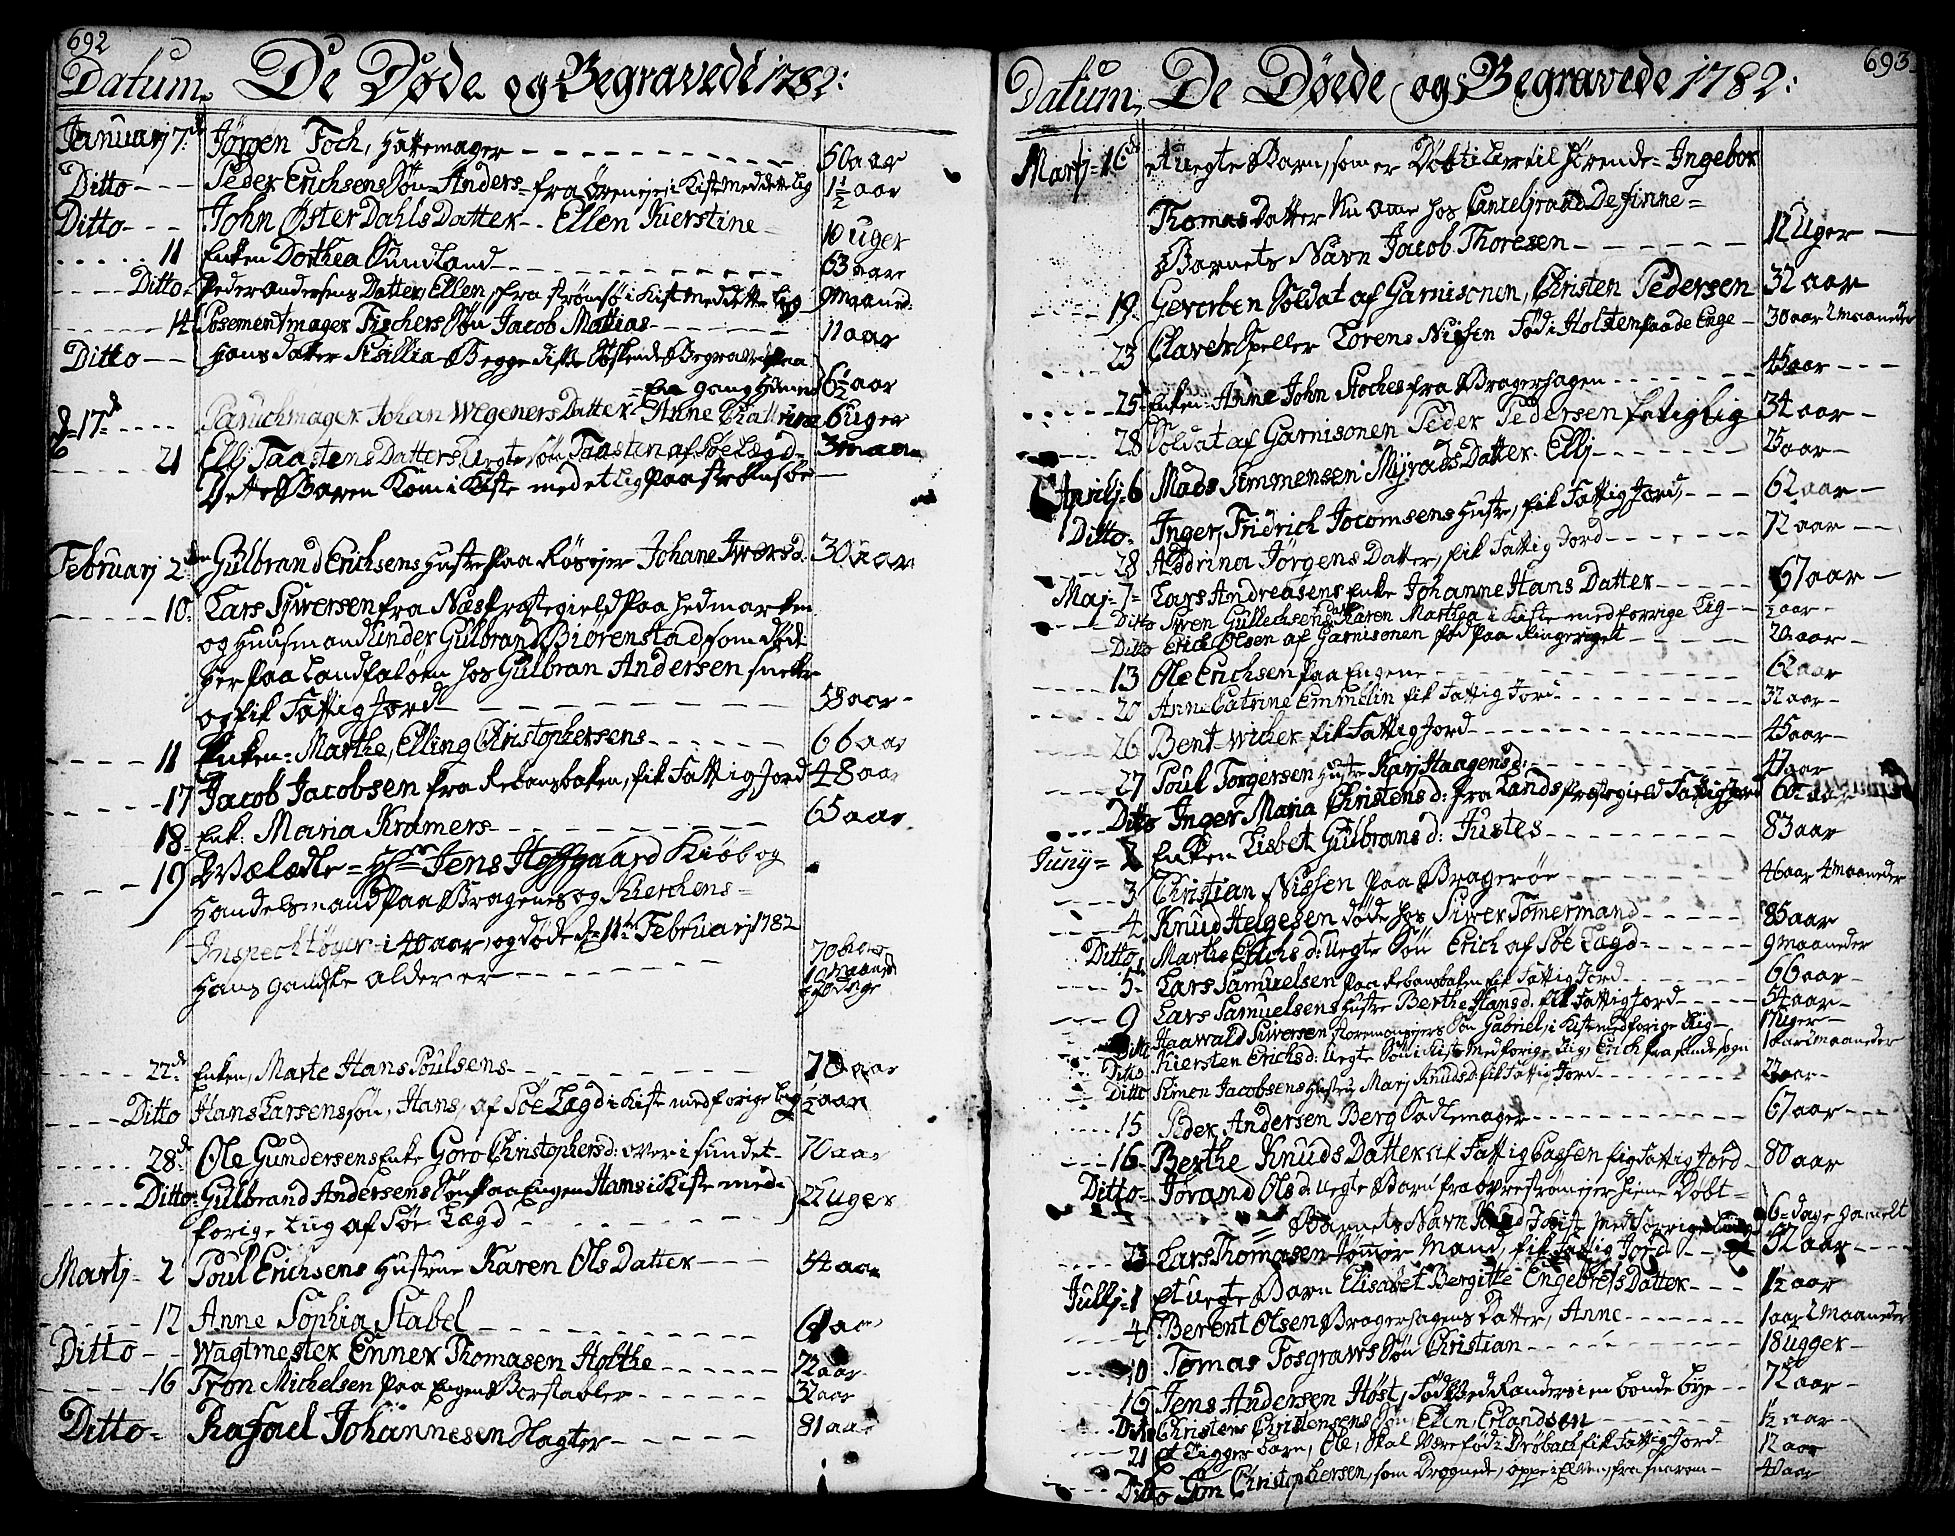 SAKO, Bragernes kirkebøker, F/Fa/L0006a: Parish register (official) no. I 6, 1782-1814, p. 692-693